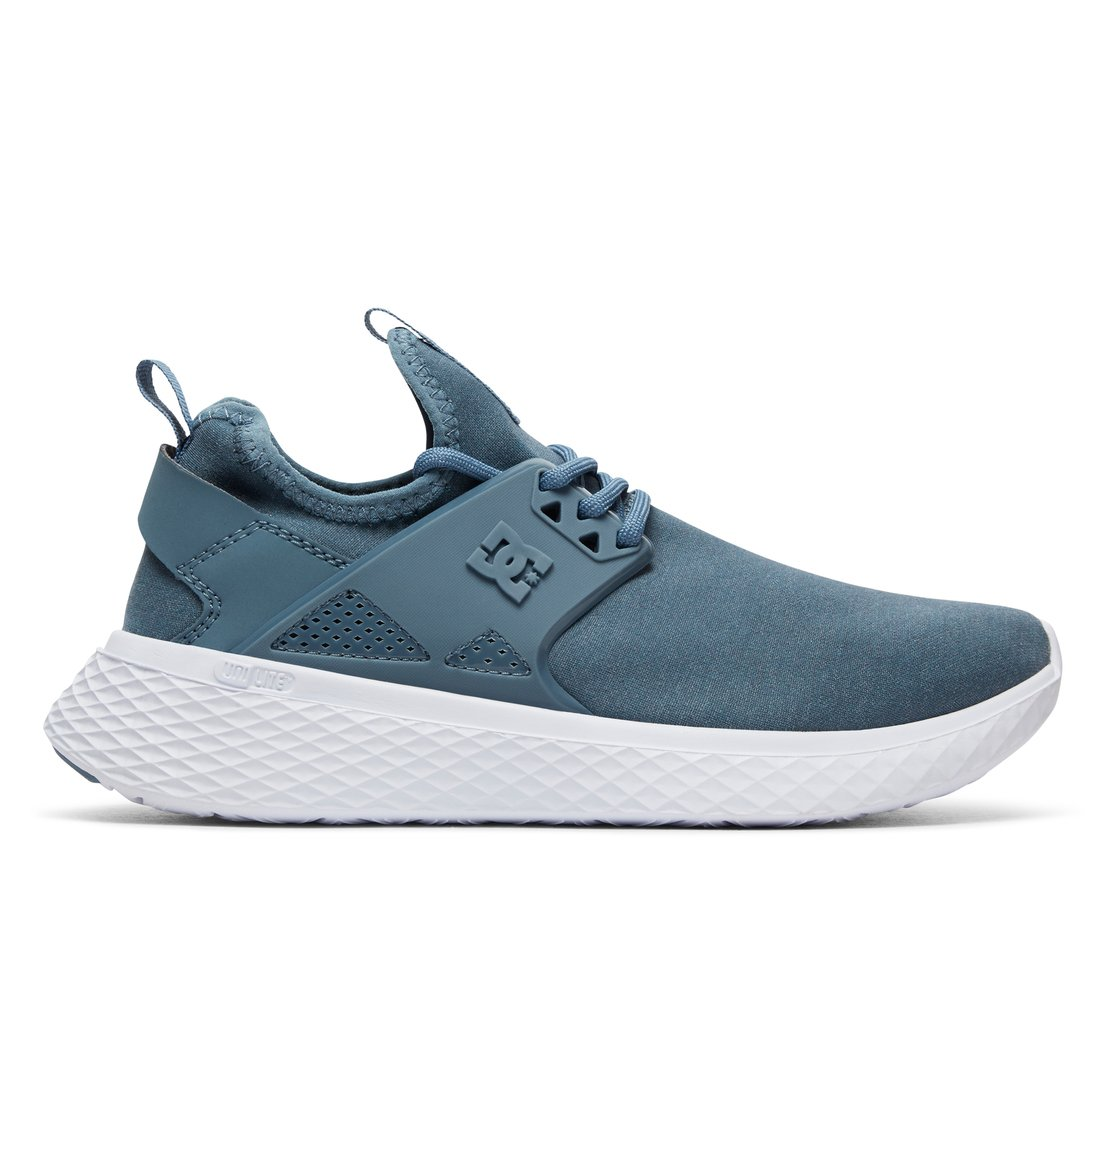 DC Shoes Schuhe »Meridian TX SE«, blau, Blue/white